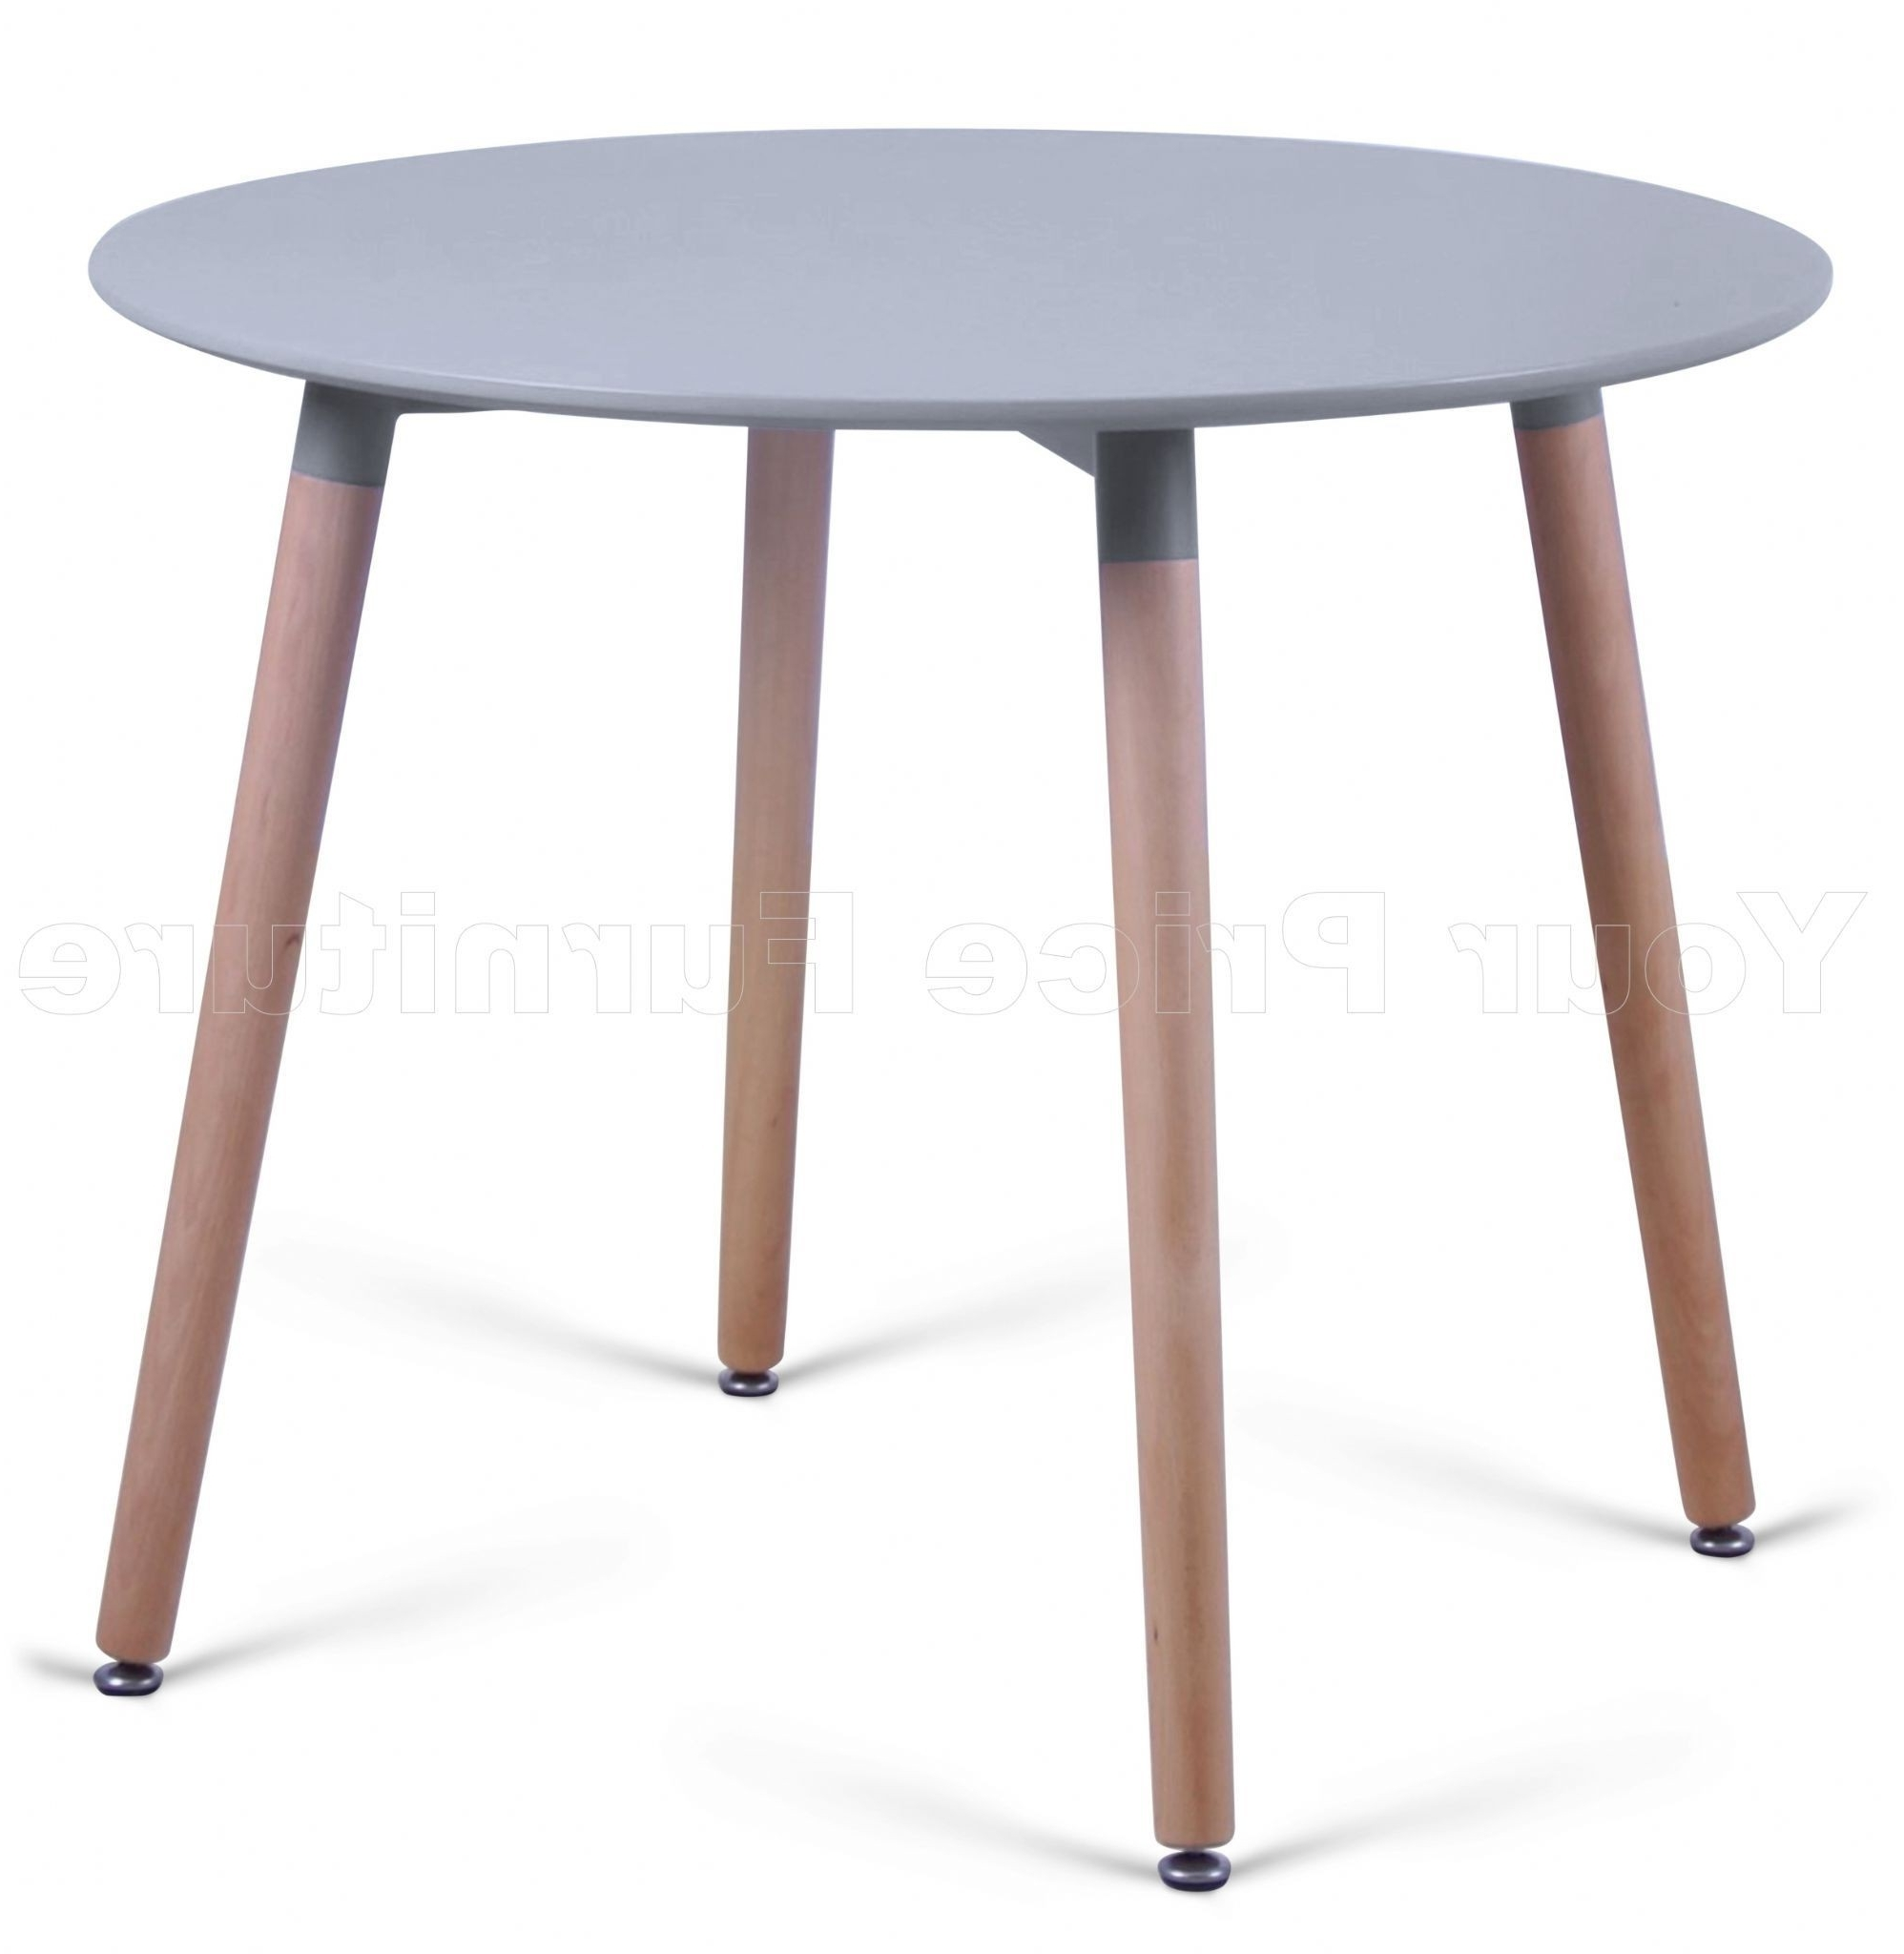 [%Round Dining Room Tables For Sale Best Of 99 [ Dining Table Round For Well Liked Cheap Round Dining Tables|Cheap Round Dining Tables Within Favorite Round Dining Room Tables For Sale Best Of 99 [ Dining Table Round|Favorite Cheap Round Dining Tables Intended For Round Dining Room Tables For Sale Best Of 99 [ Dining Table Round|Preferred Round Dining Room Tables For Sale Best Of 99 [ Dining Table Round Regarding Cheap Round Dining Tables%] (View 17 of 25)